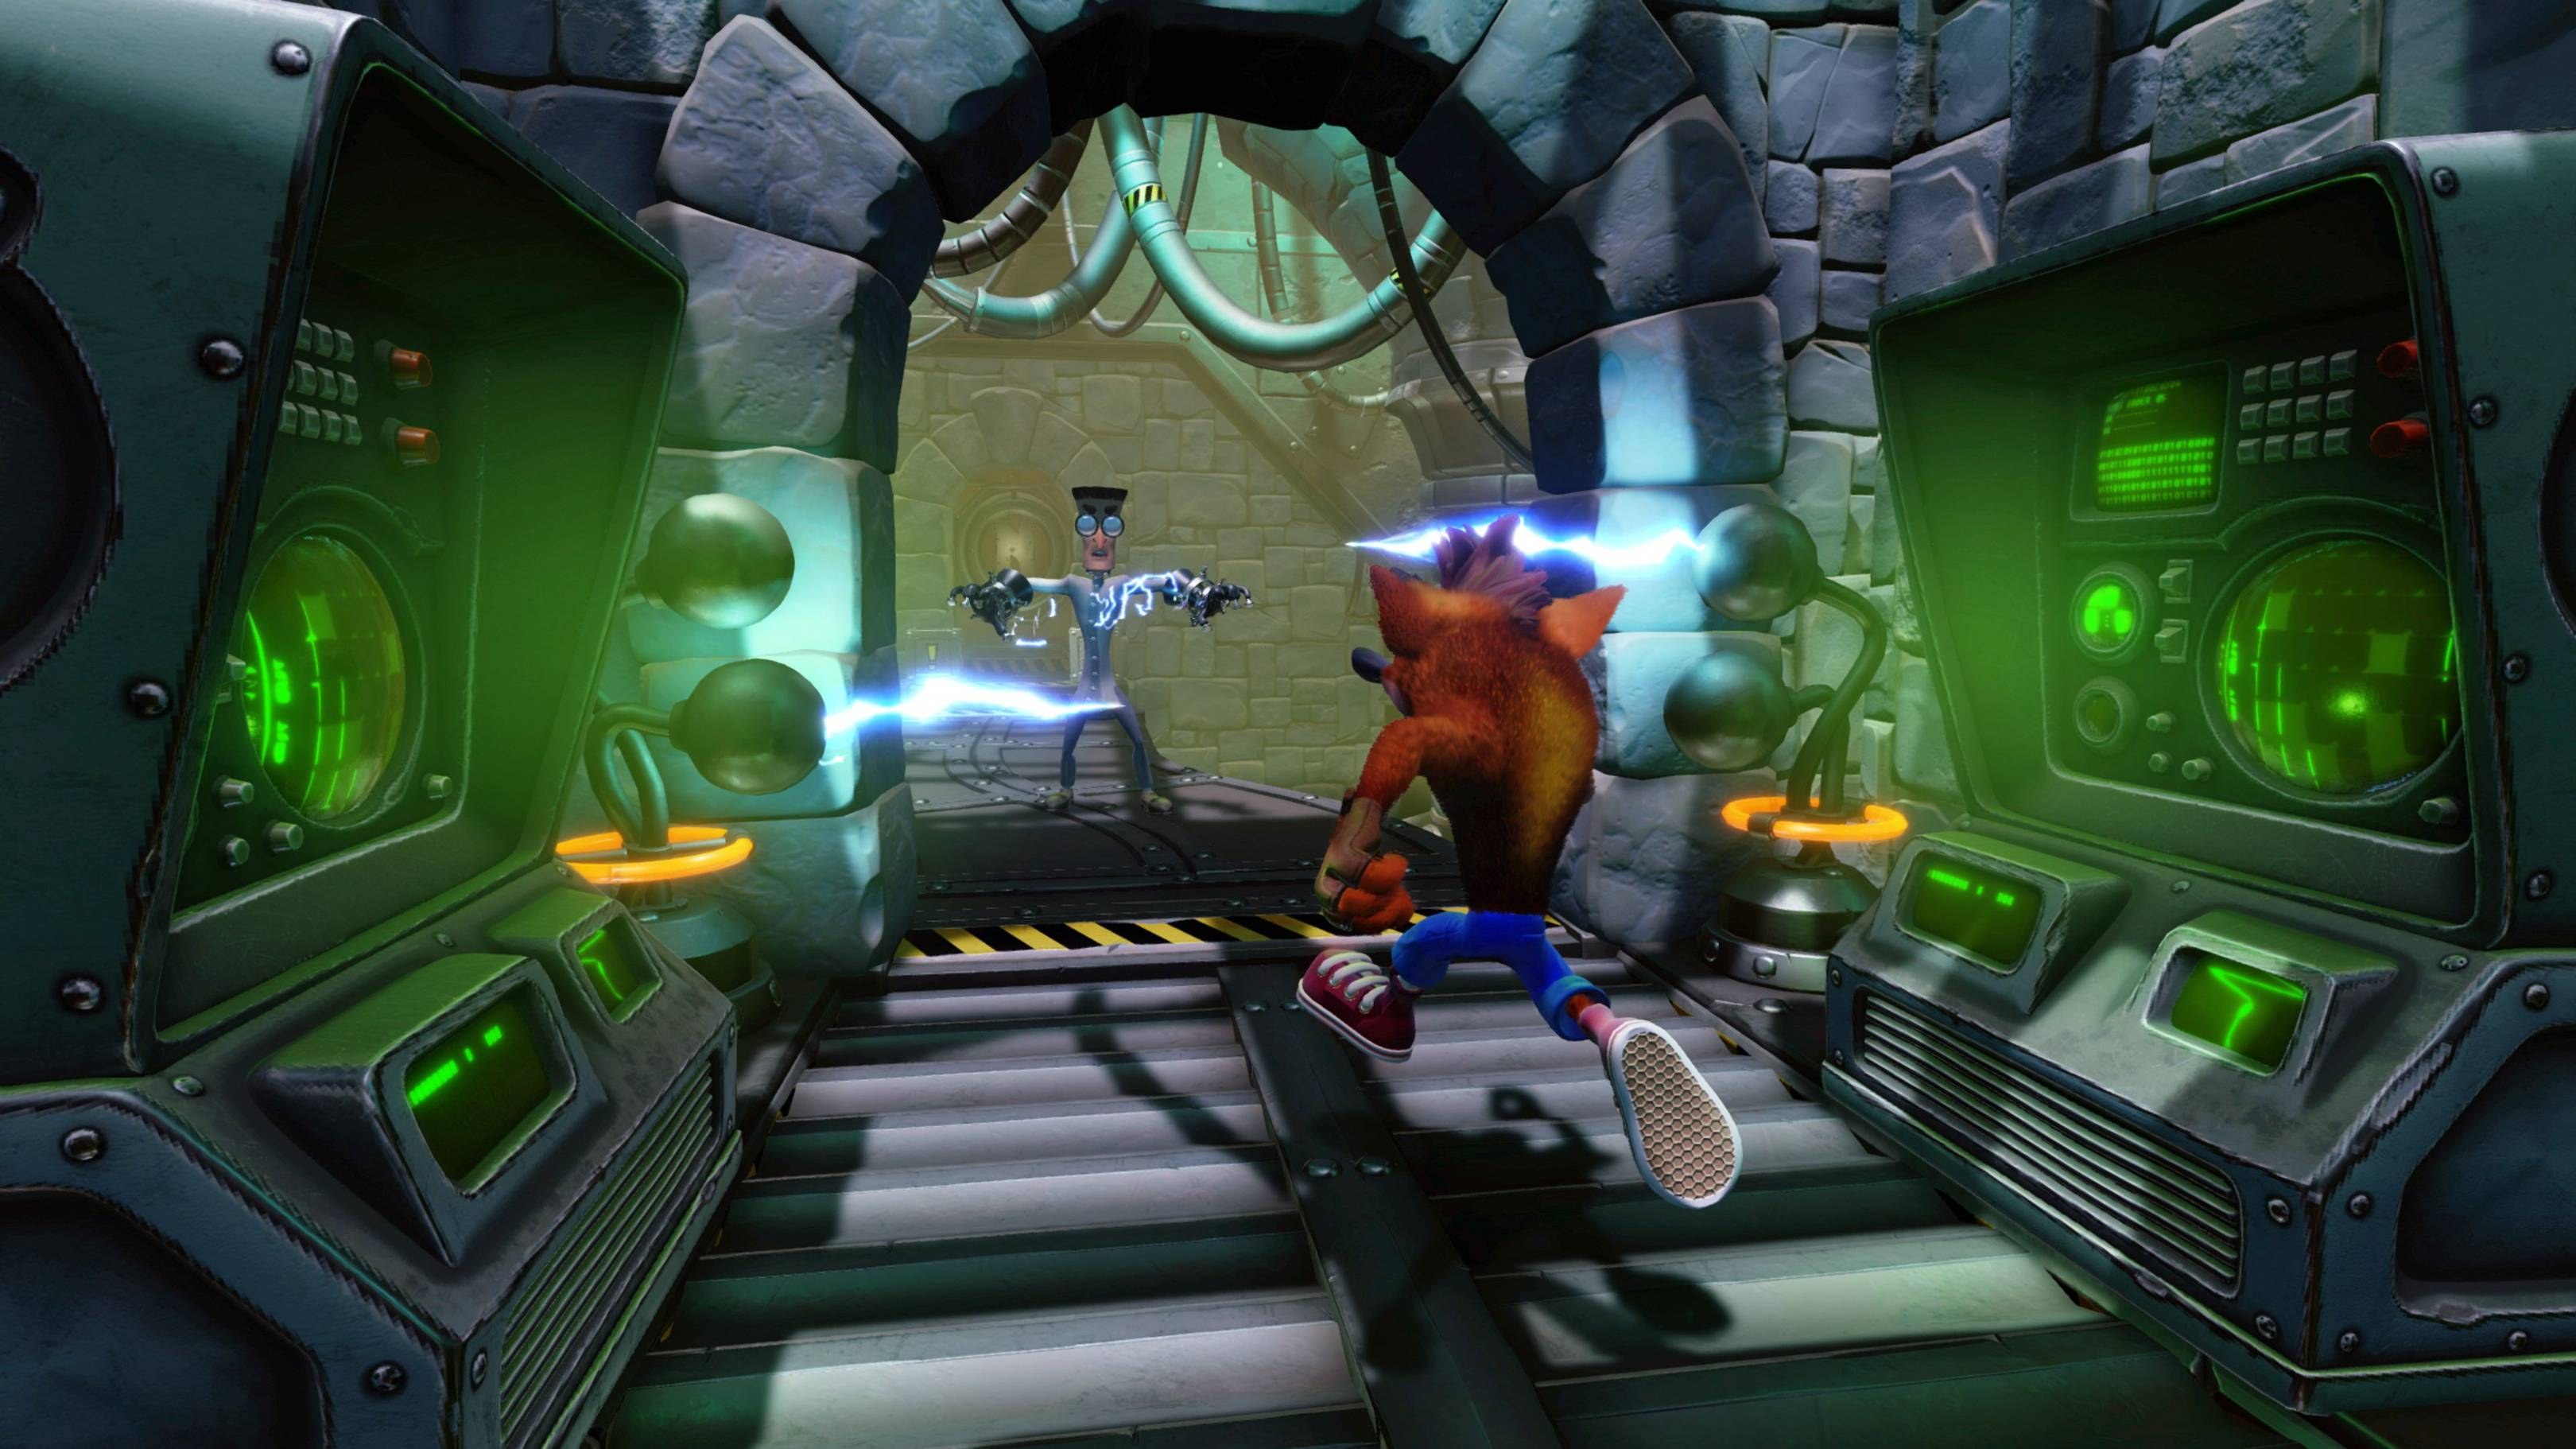 Crash Bandicoot N Sane Trilogy review: a new spin that can't hide